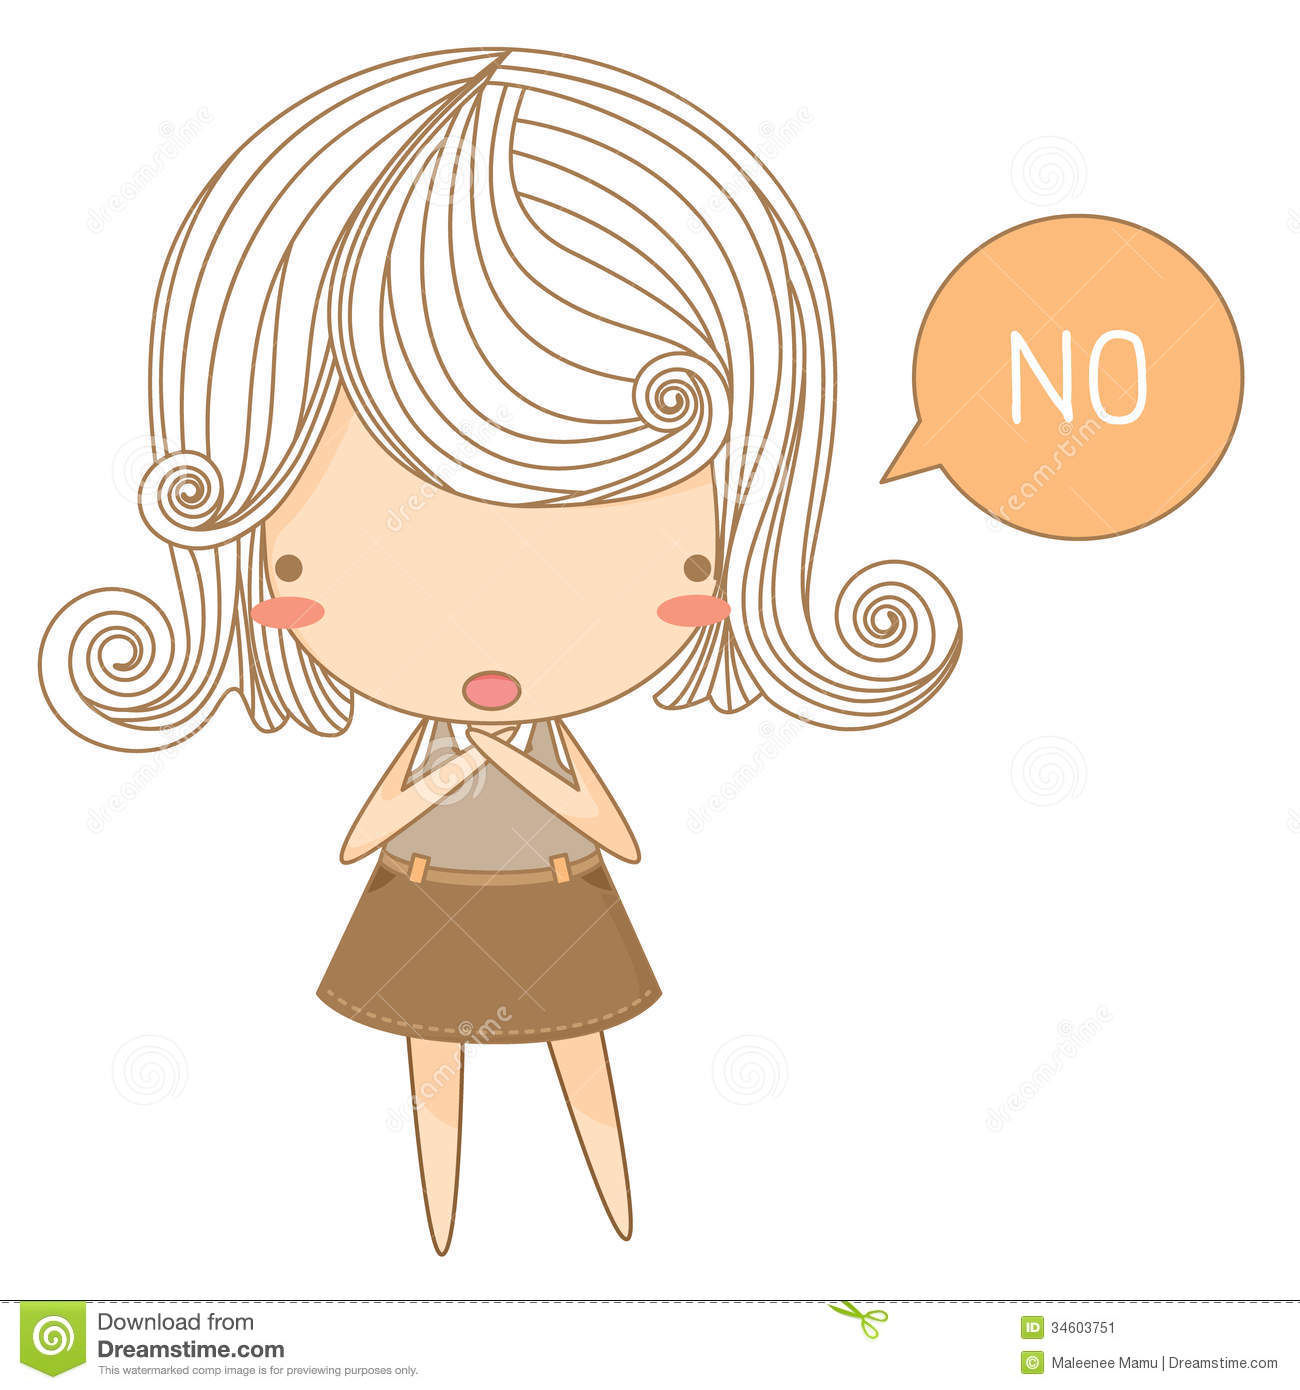 How to say no to a girl